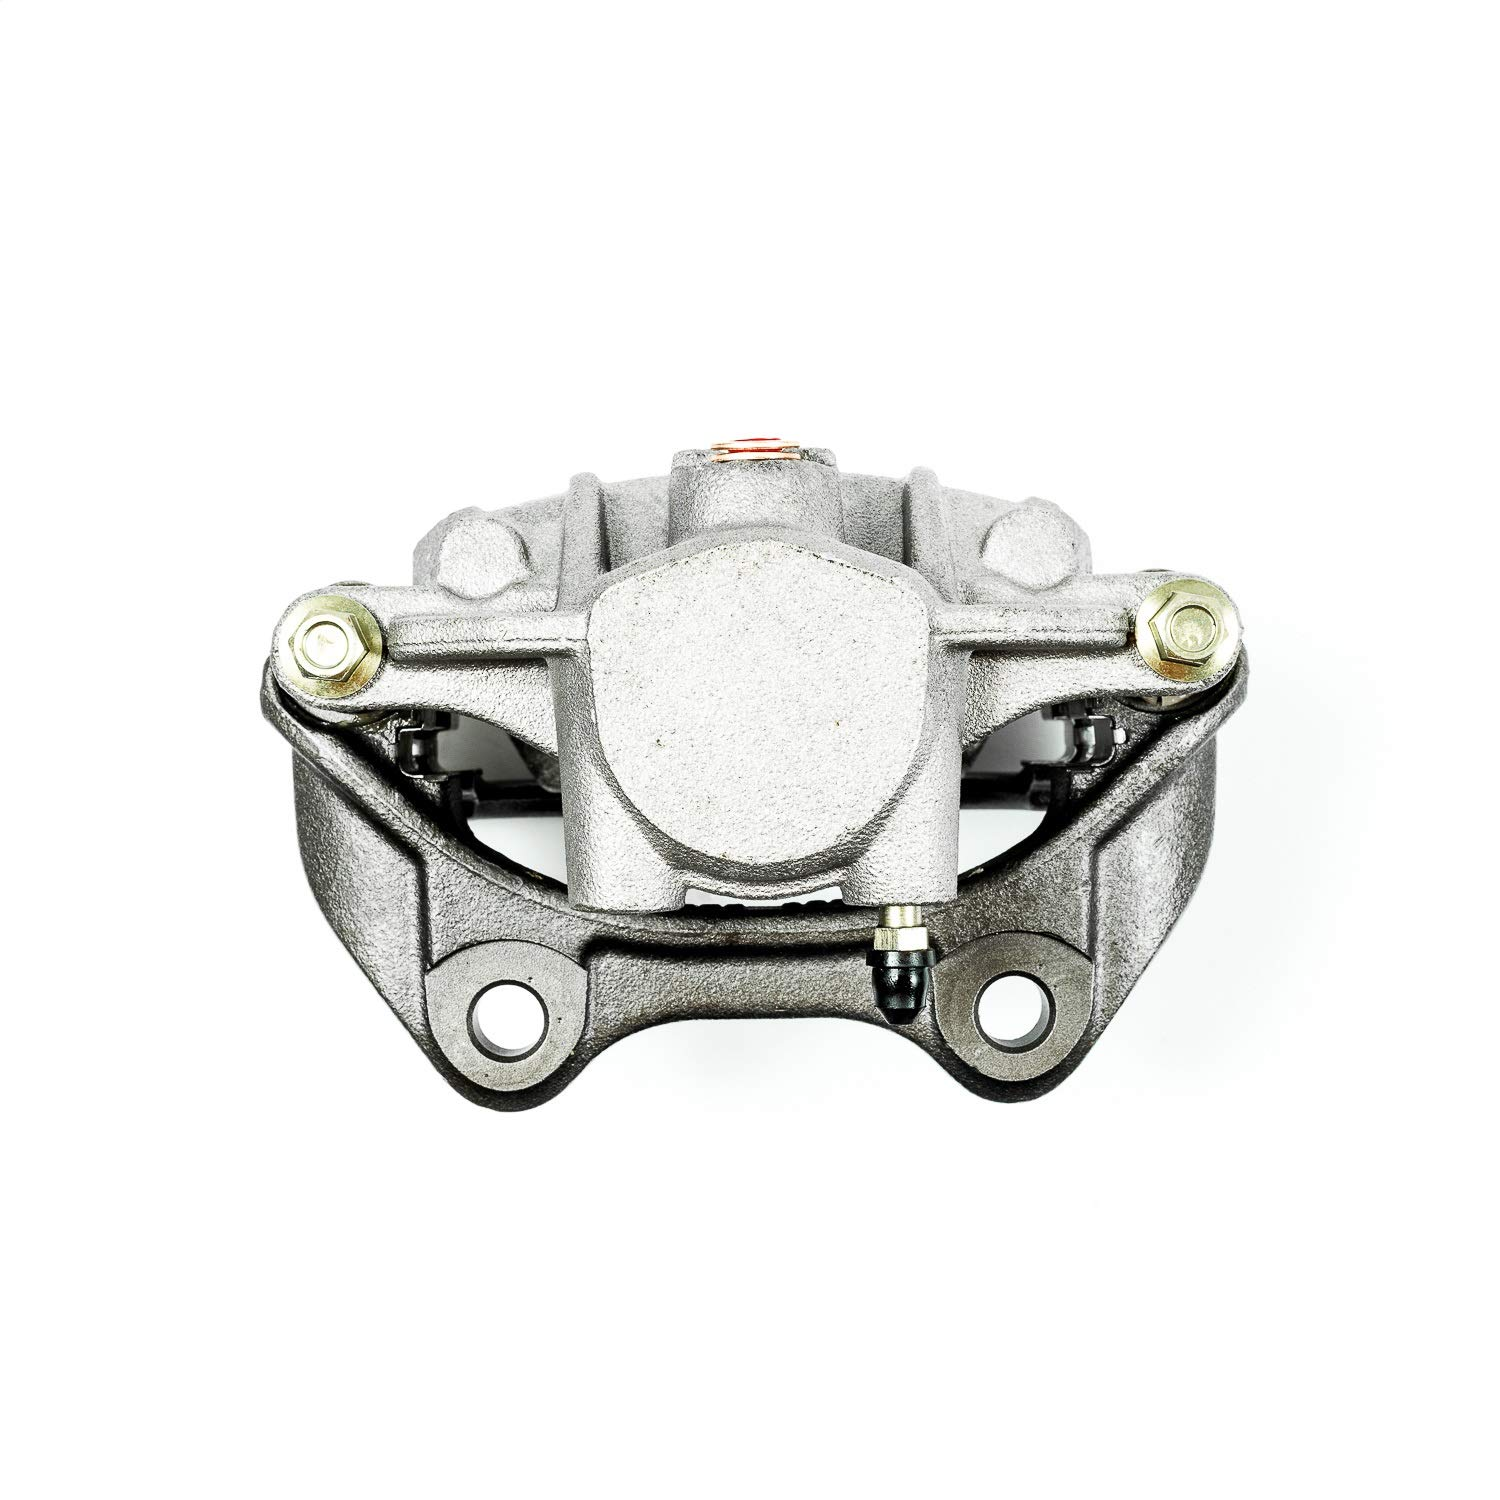 Power Stop L4764 Autospecialty Remanufactured Caliper